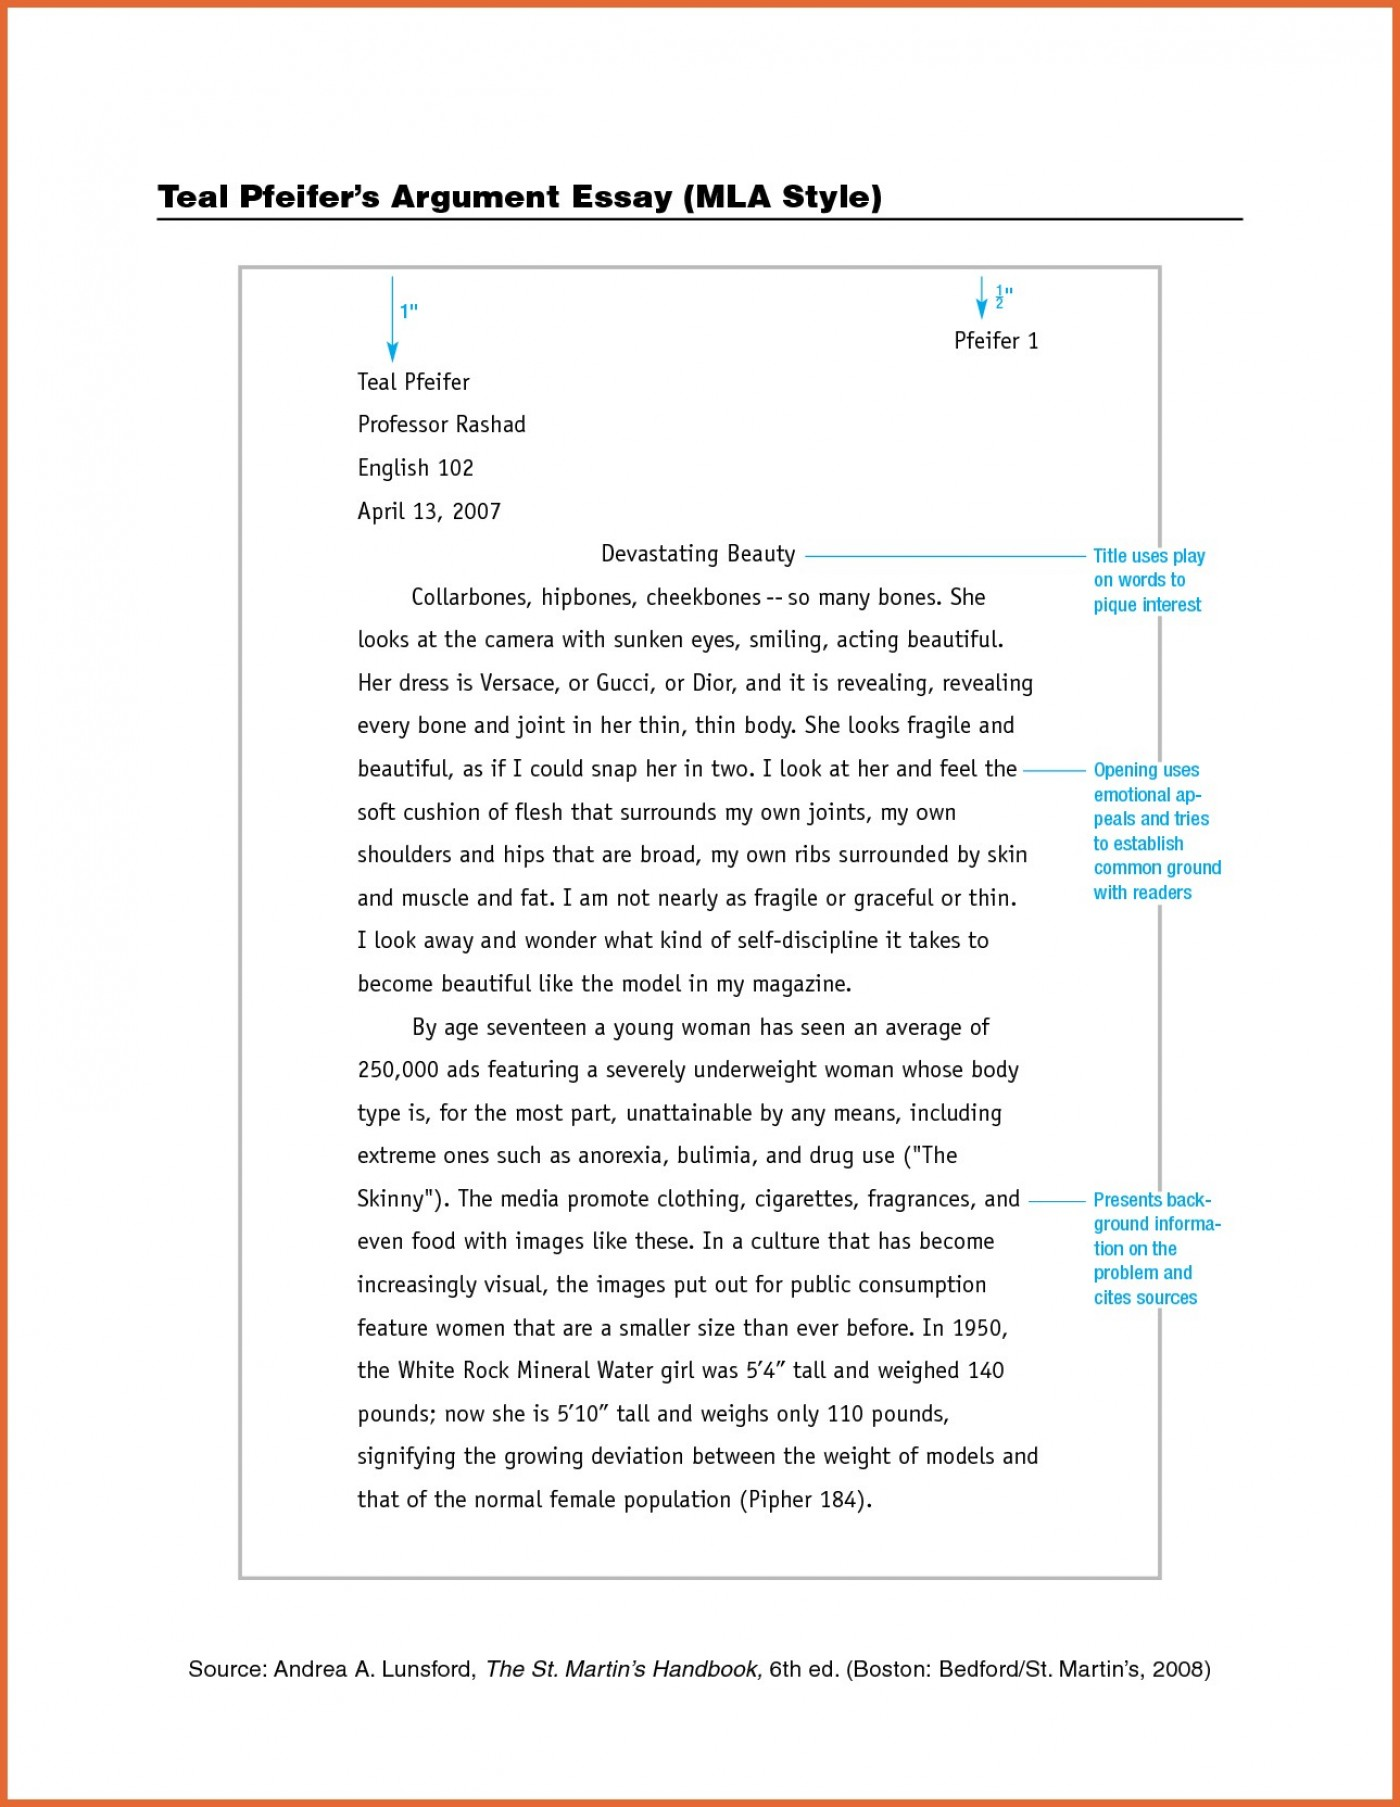 018 Mla Format Essay Title Page Fresh Of An Goal How To Your Paper In Goodwi My Style With Word Narrative Stirring Template Outline Persuasive Parenthetical Citations No Number 1400